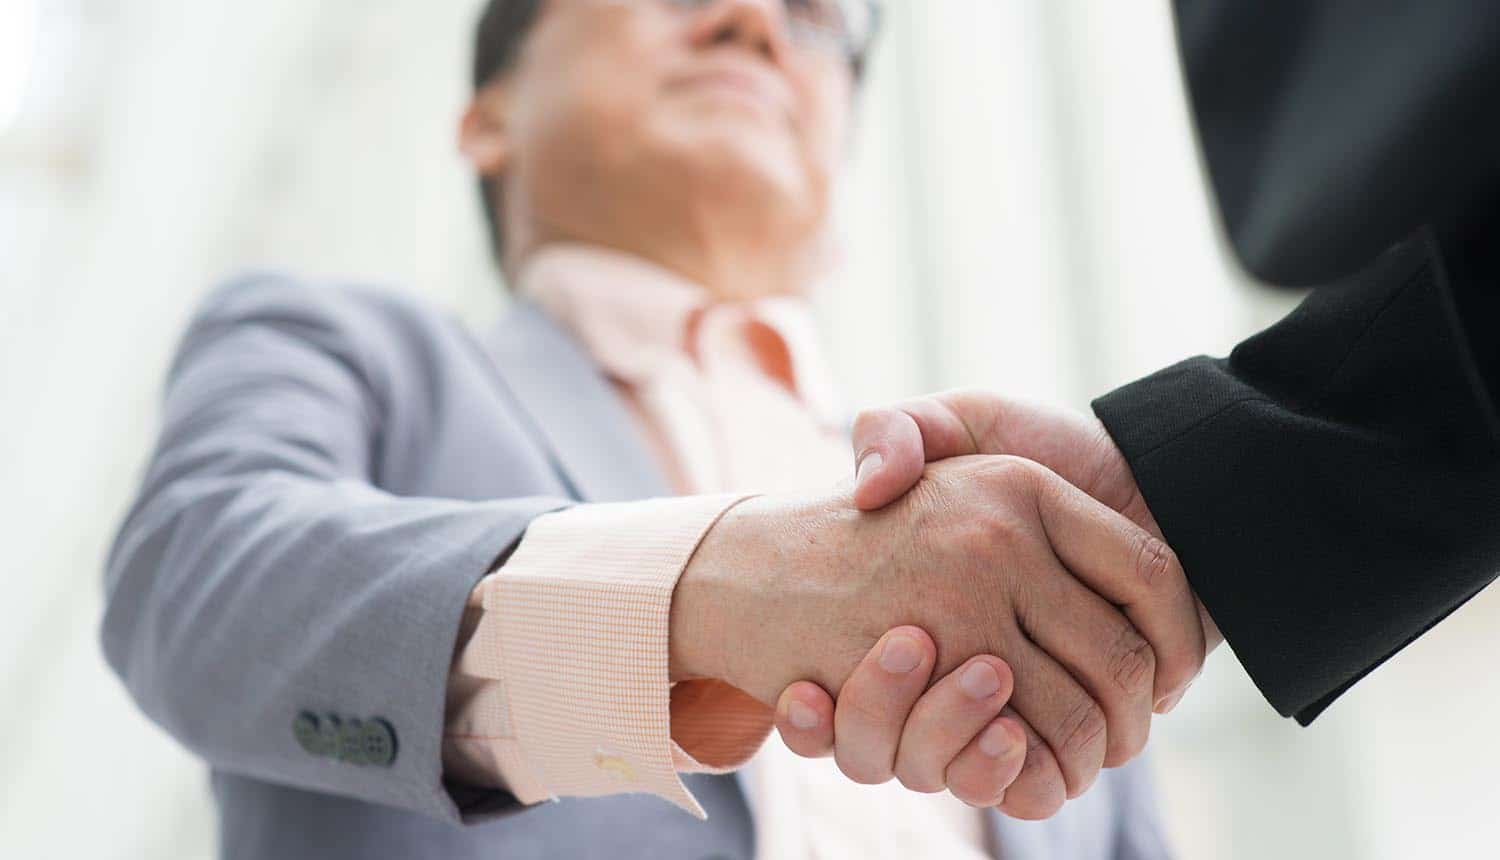 Employee shaking hands with executive